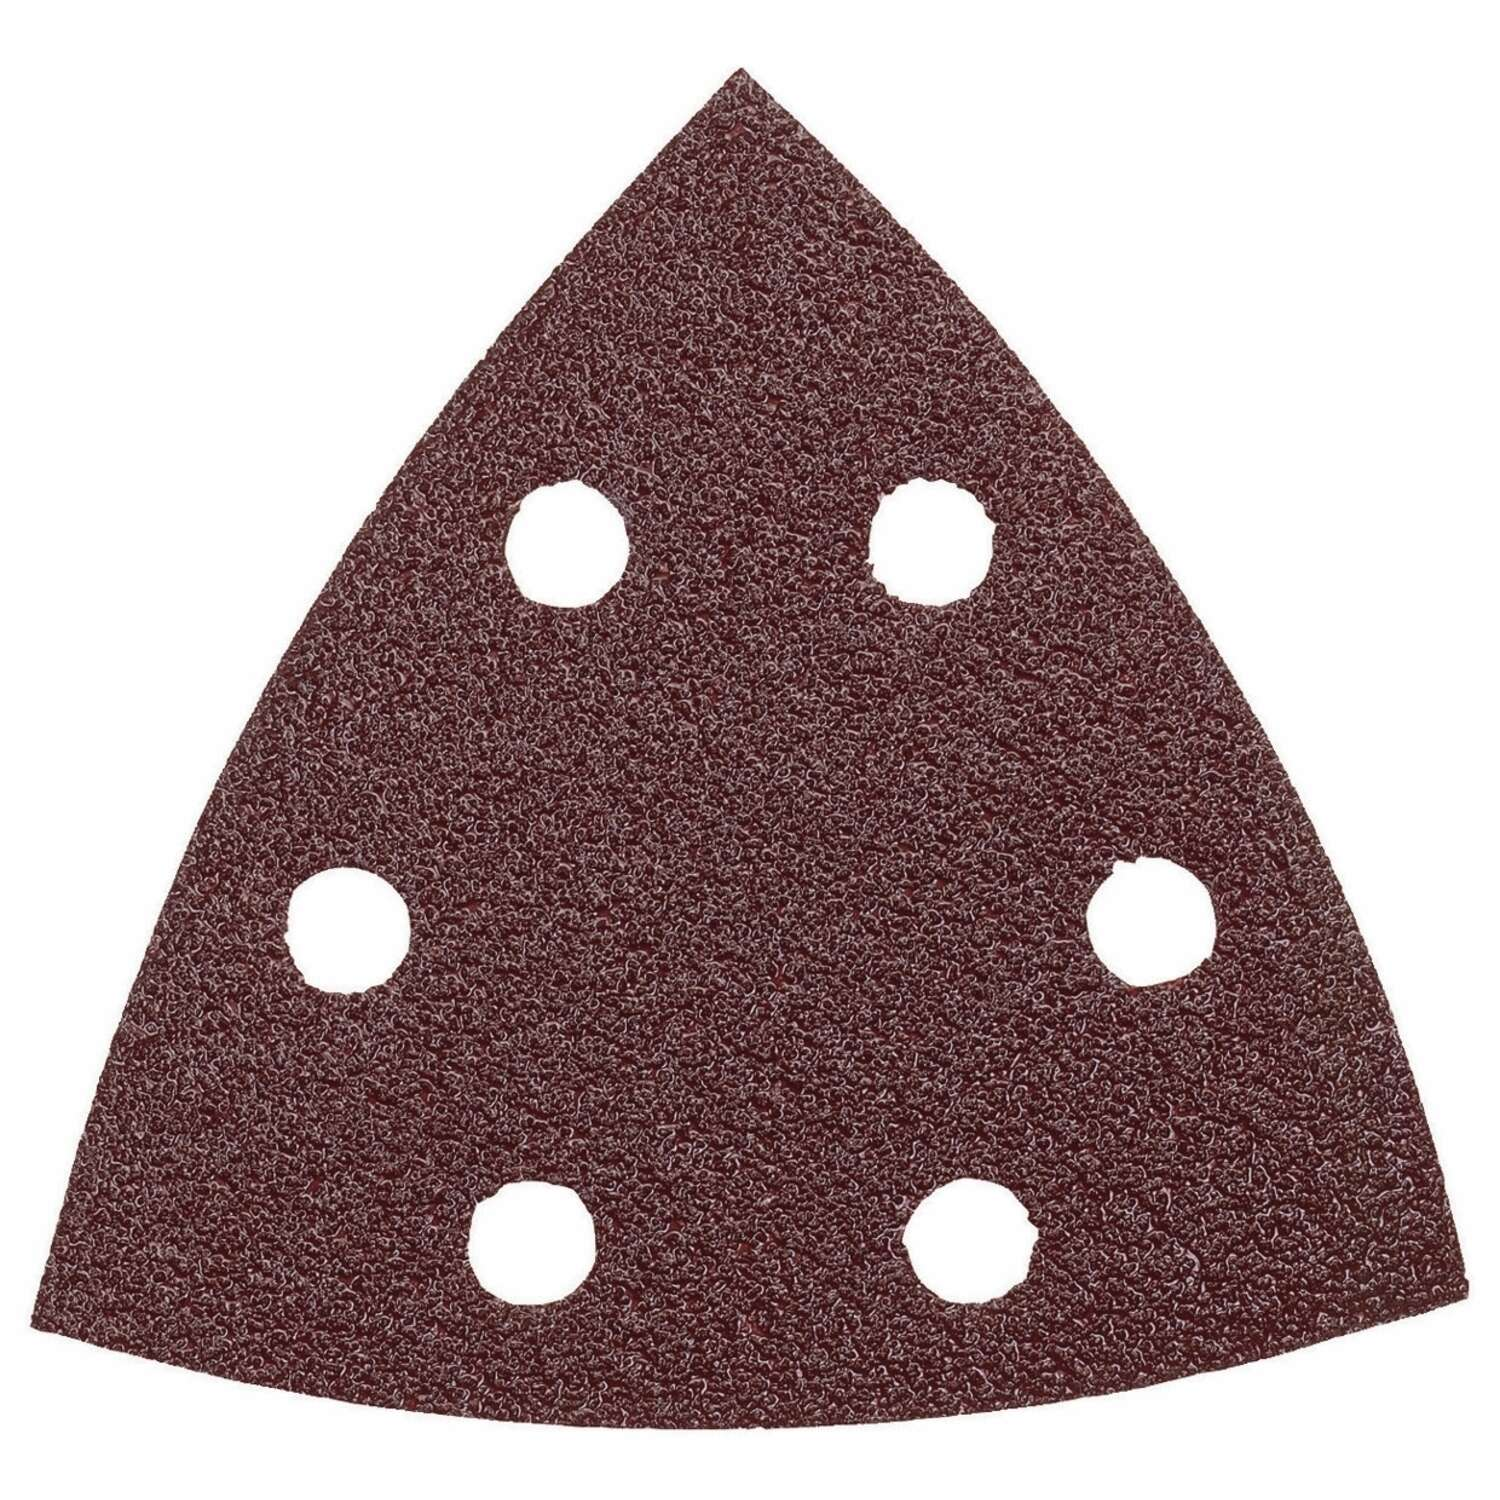 Bosch  3.75 in. Aluminum Oxide  Hook and Loop  Sanding Disc  80 Grit 5 pk